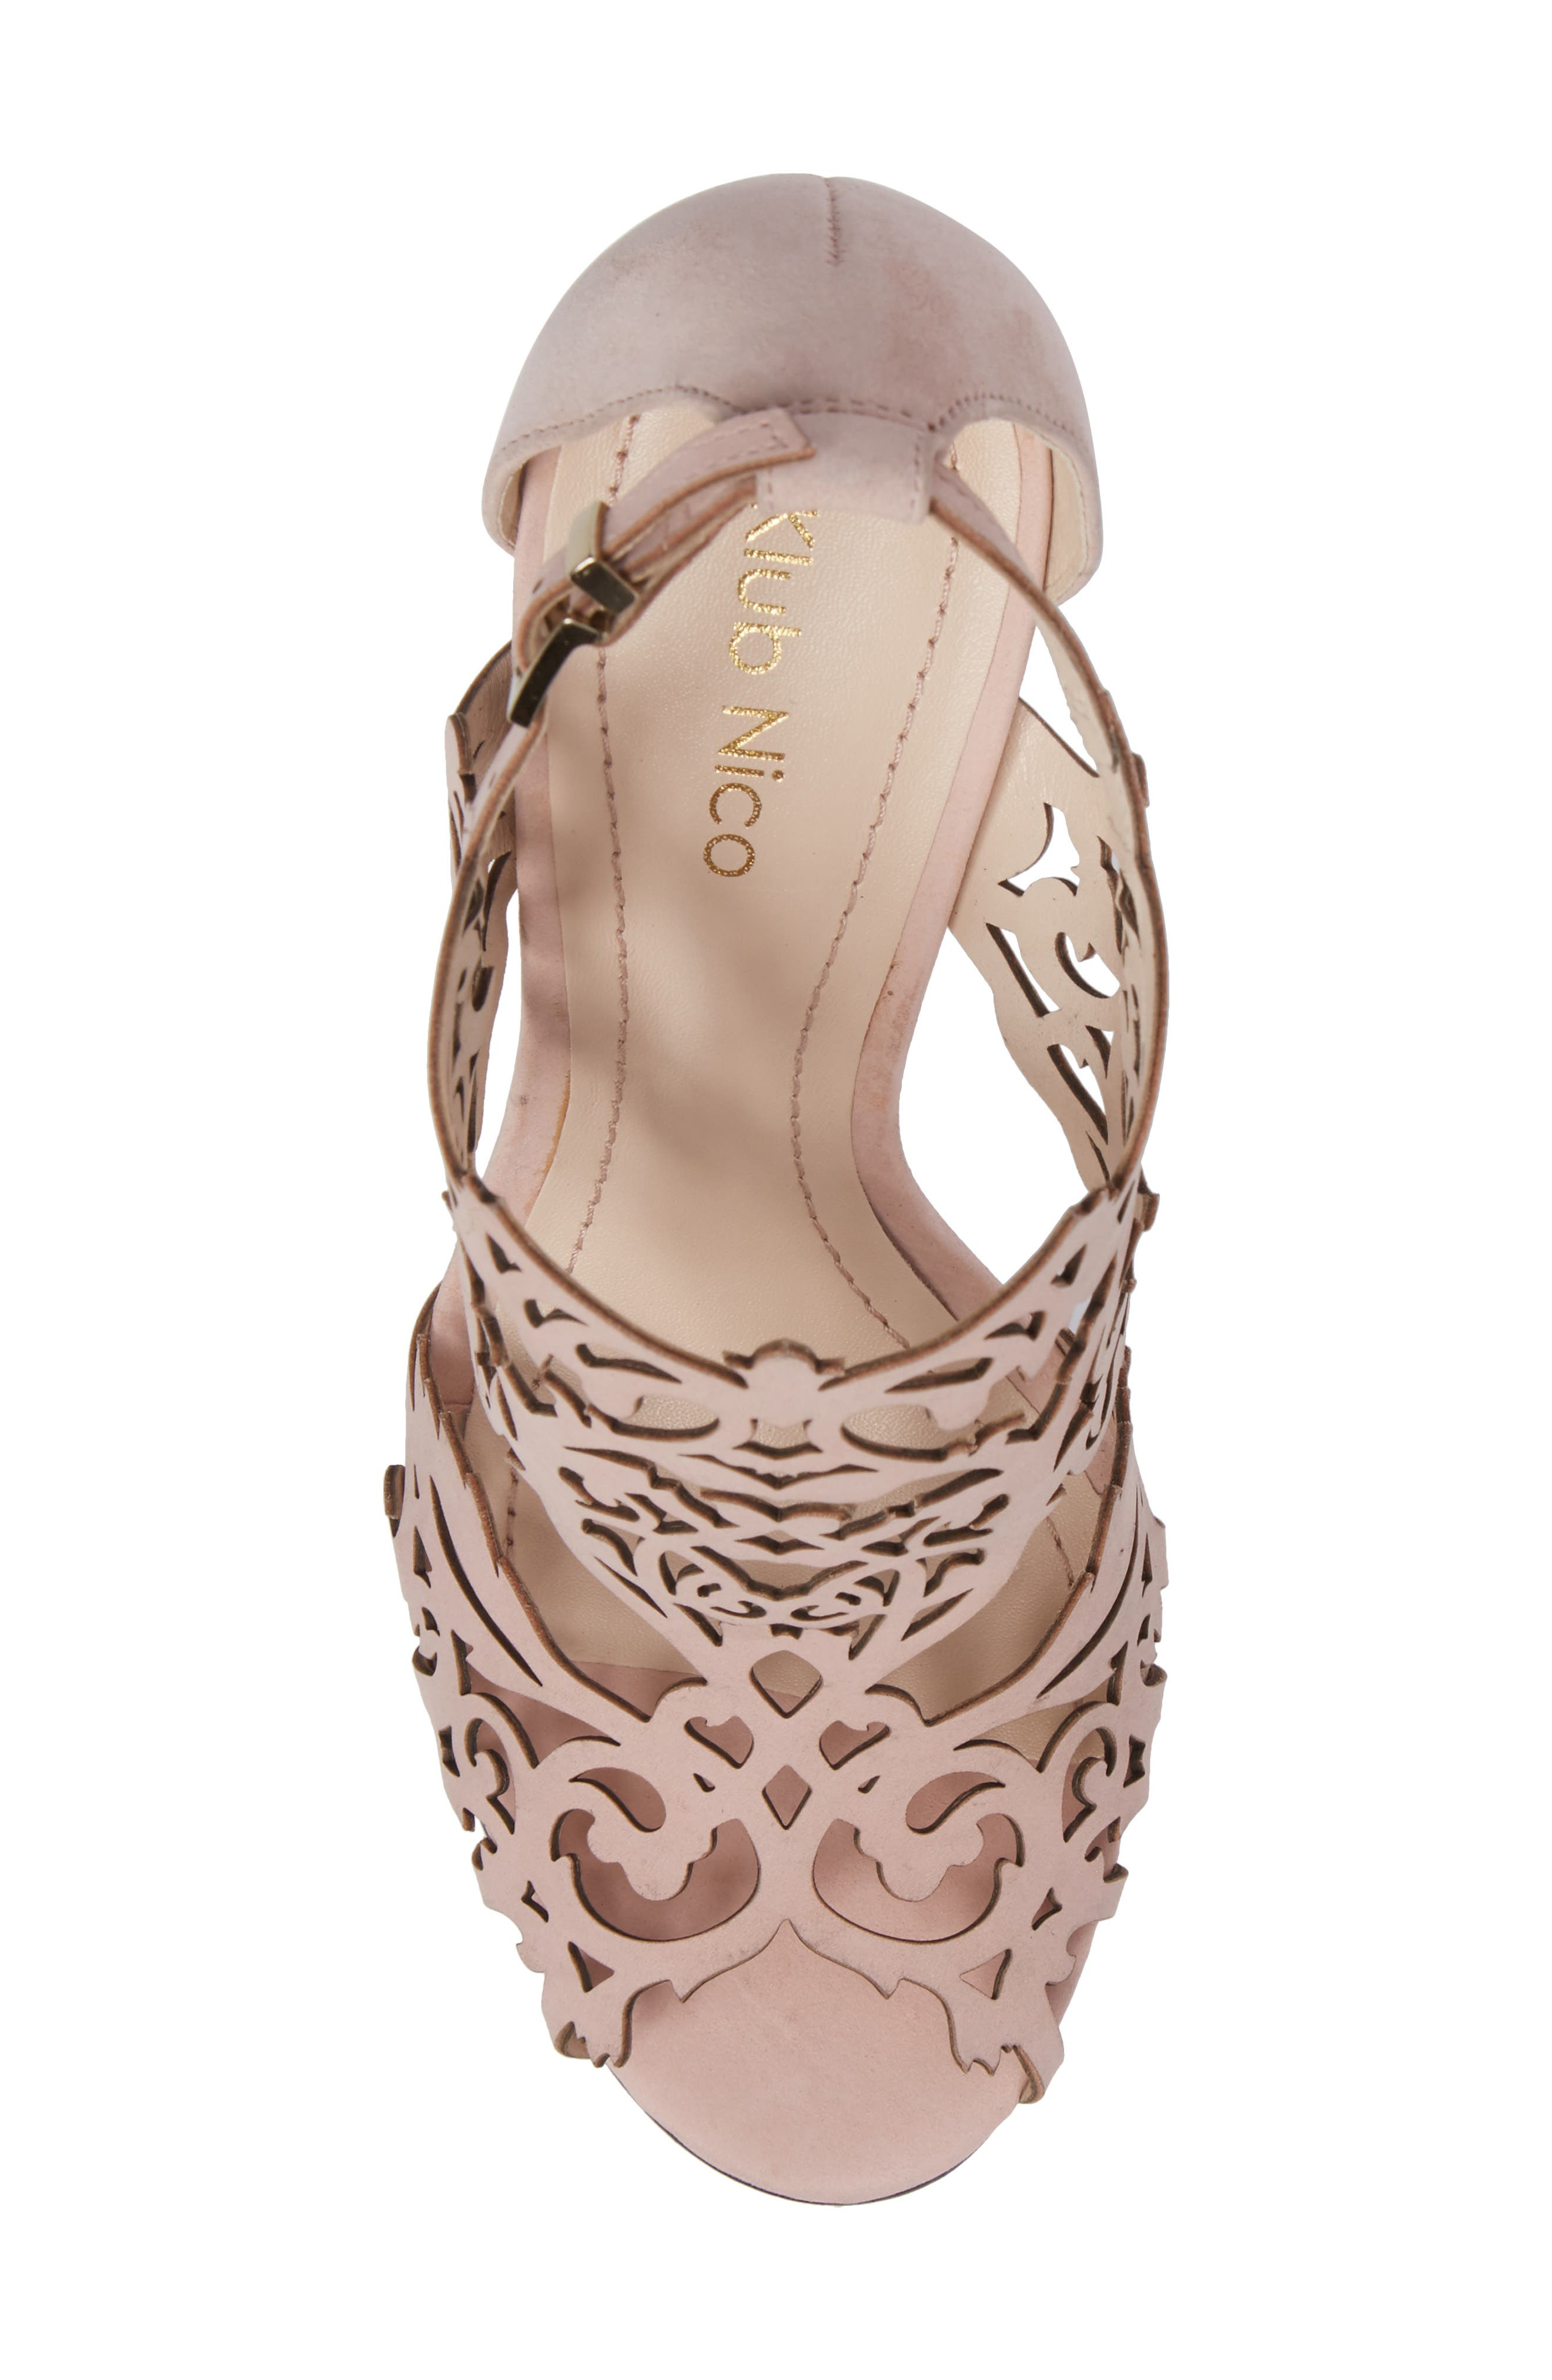 Marcela Laser Cutout Sandal,                             Alternate thumbnail 5, color,                             Blush Nubuck Leather